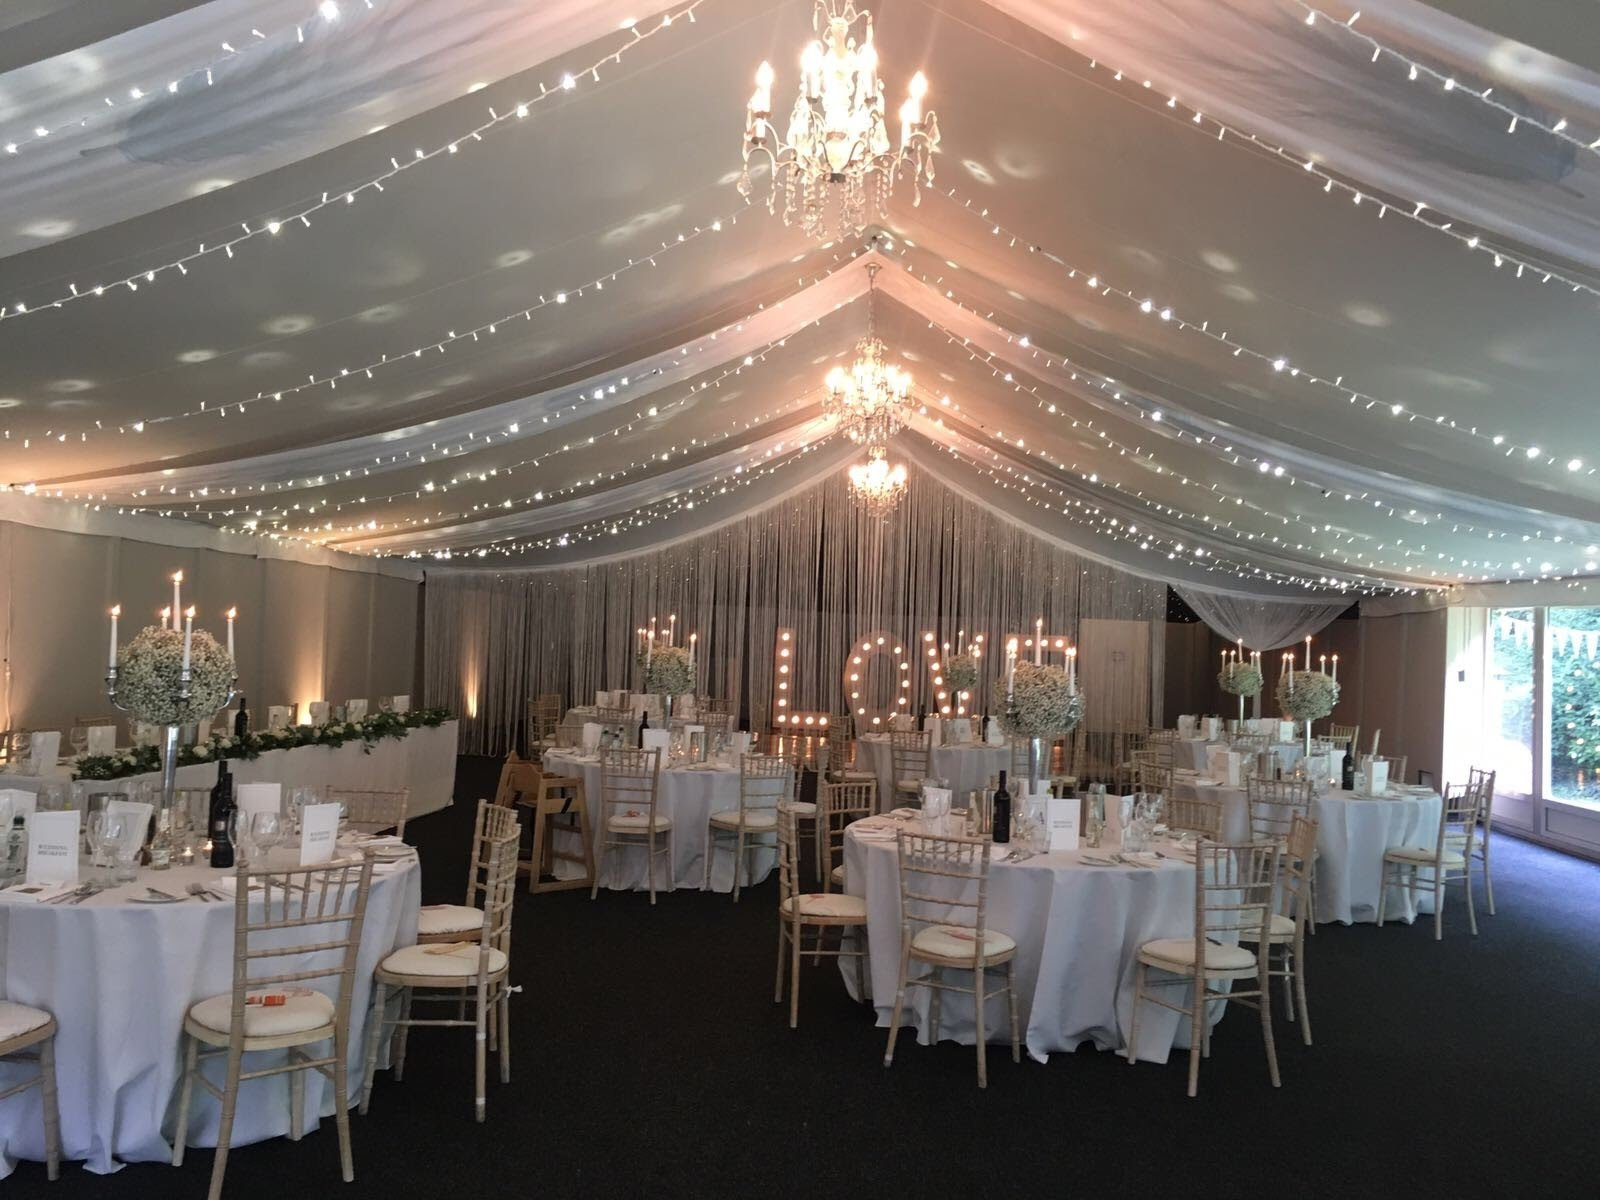 Thrumpton Hall wedding decor with ceiling drape and fairy light canopy ceiling installation and light up love letters